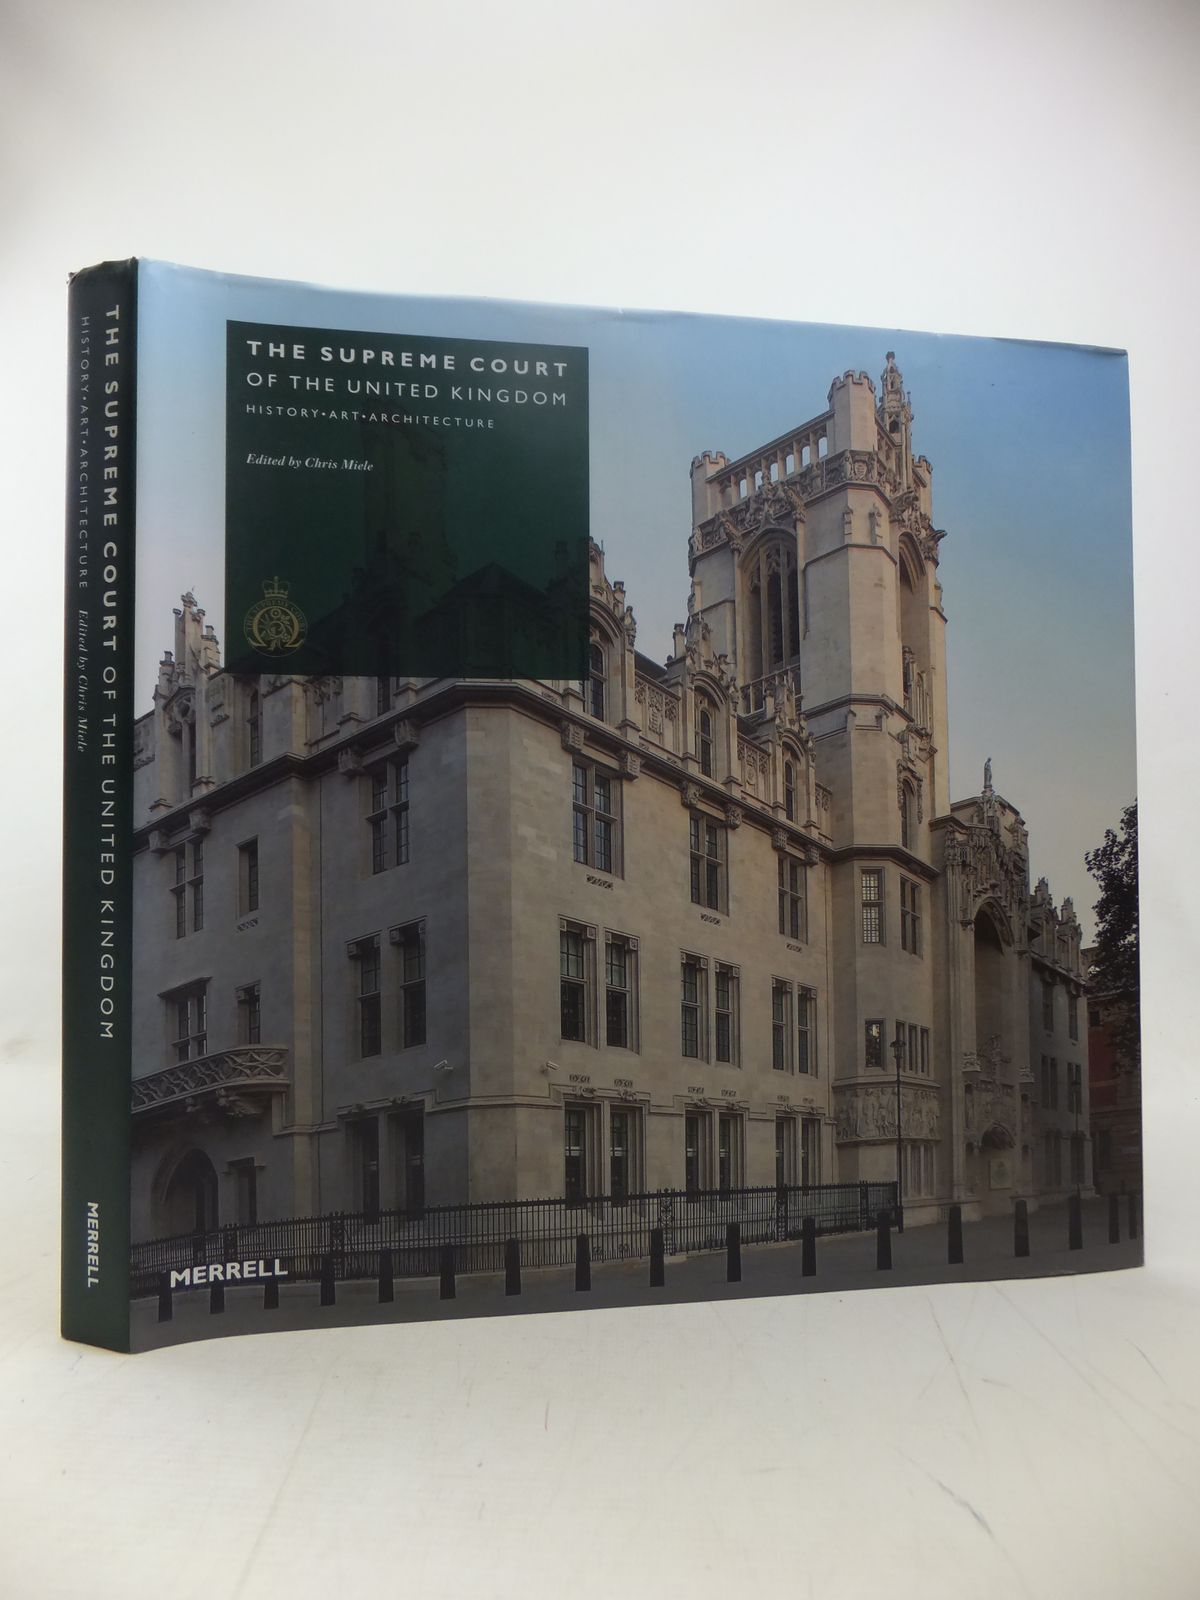 Photo of THE SUPREME COURT OF THE UNITED KINGDOM HISTORY, ART, ARCHITECTURE written by Miele, Chris published by Merrell Publishers Limited (STOCK CODE: 2118058)  for sale by Stella & Rose's Books